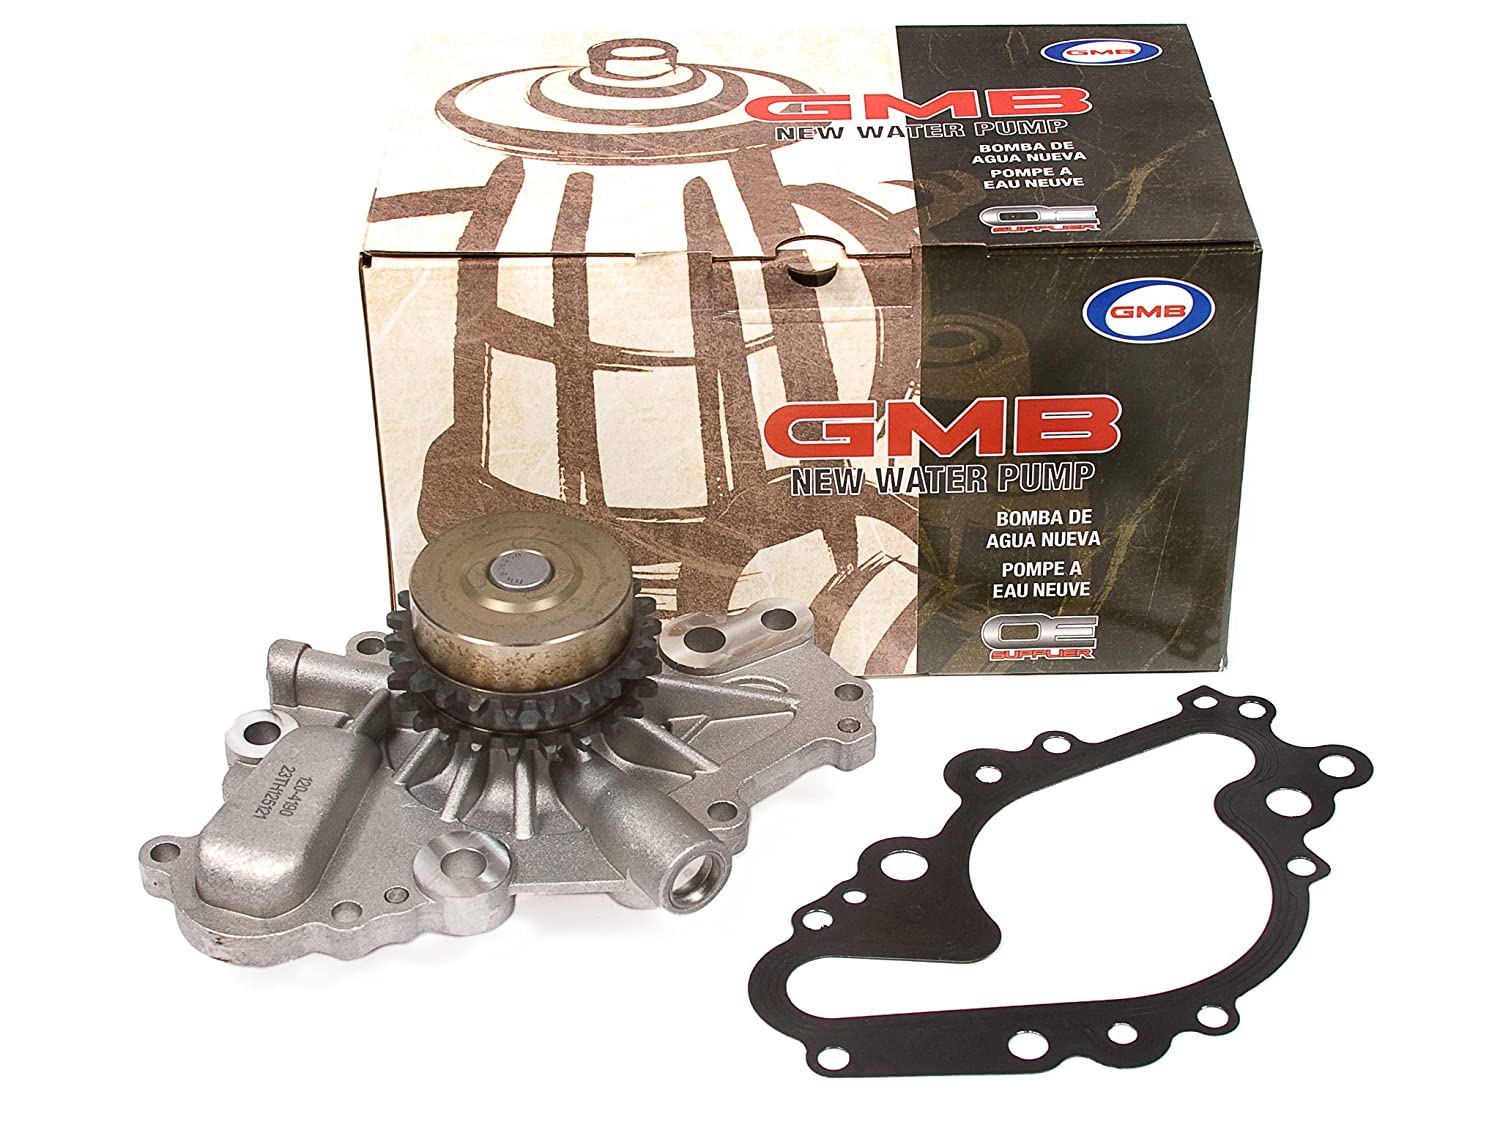 Timing Cover Gasket SBEC cam gear Evergreen TKTCS5027HWP2 Fits 00-04 Dodge Chrysler 2.7L Timing Chain Kit Water Pump